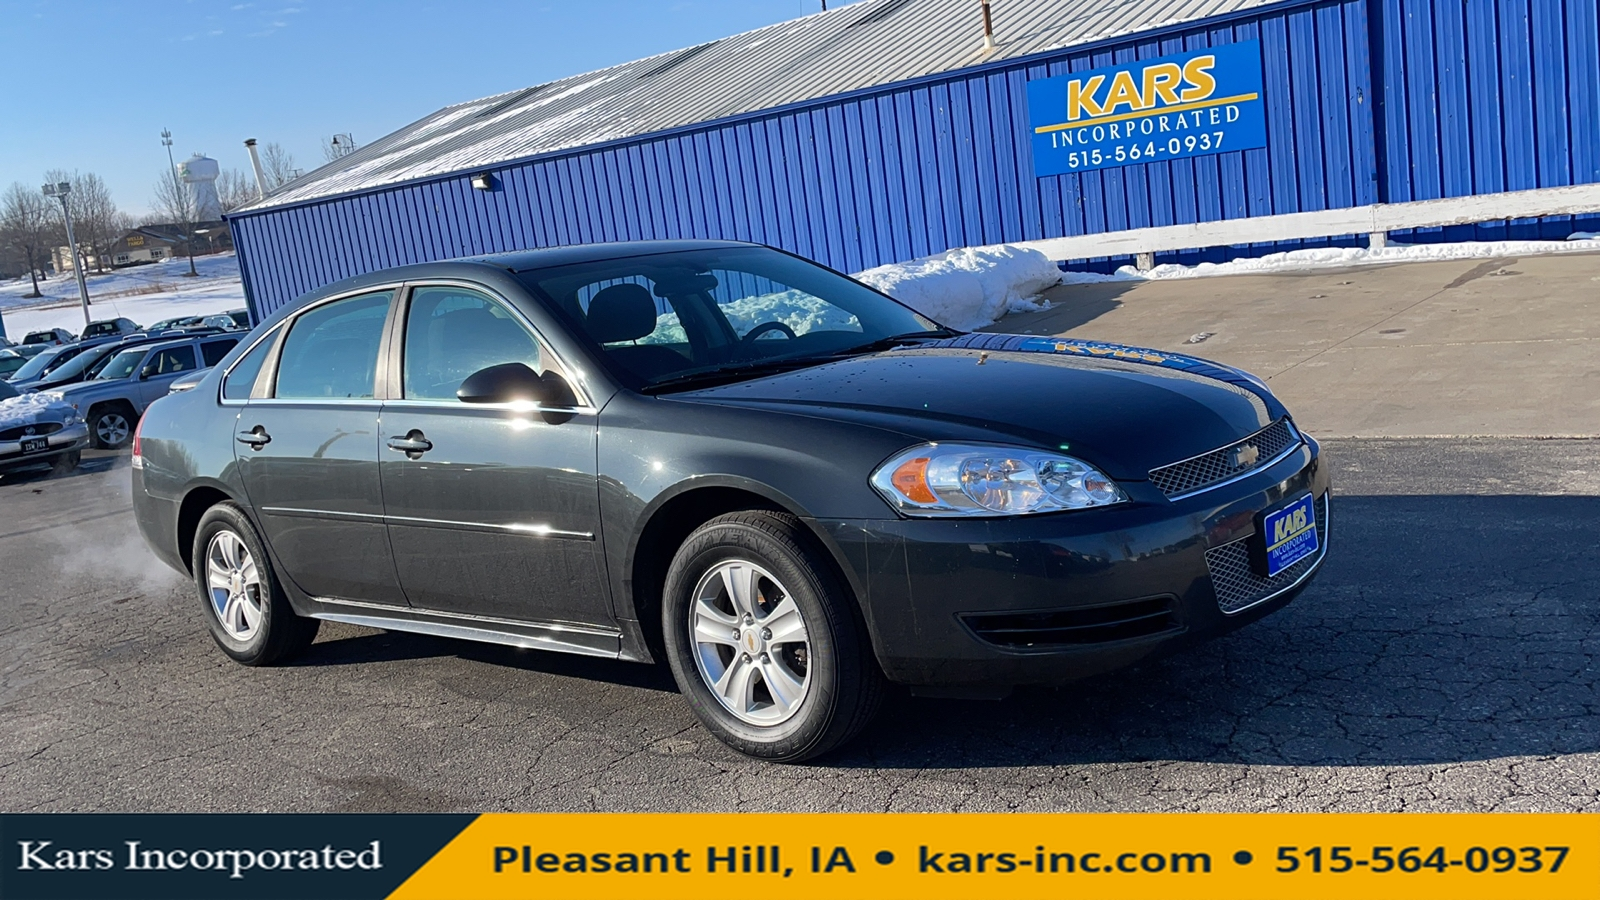 2014 Chevrolet Impala Limited LS  - E57421P  - Kars Incorporated